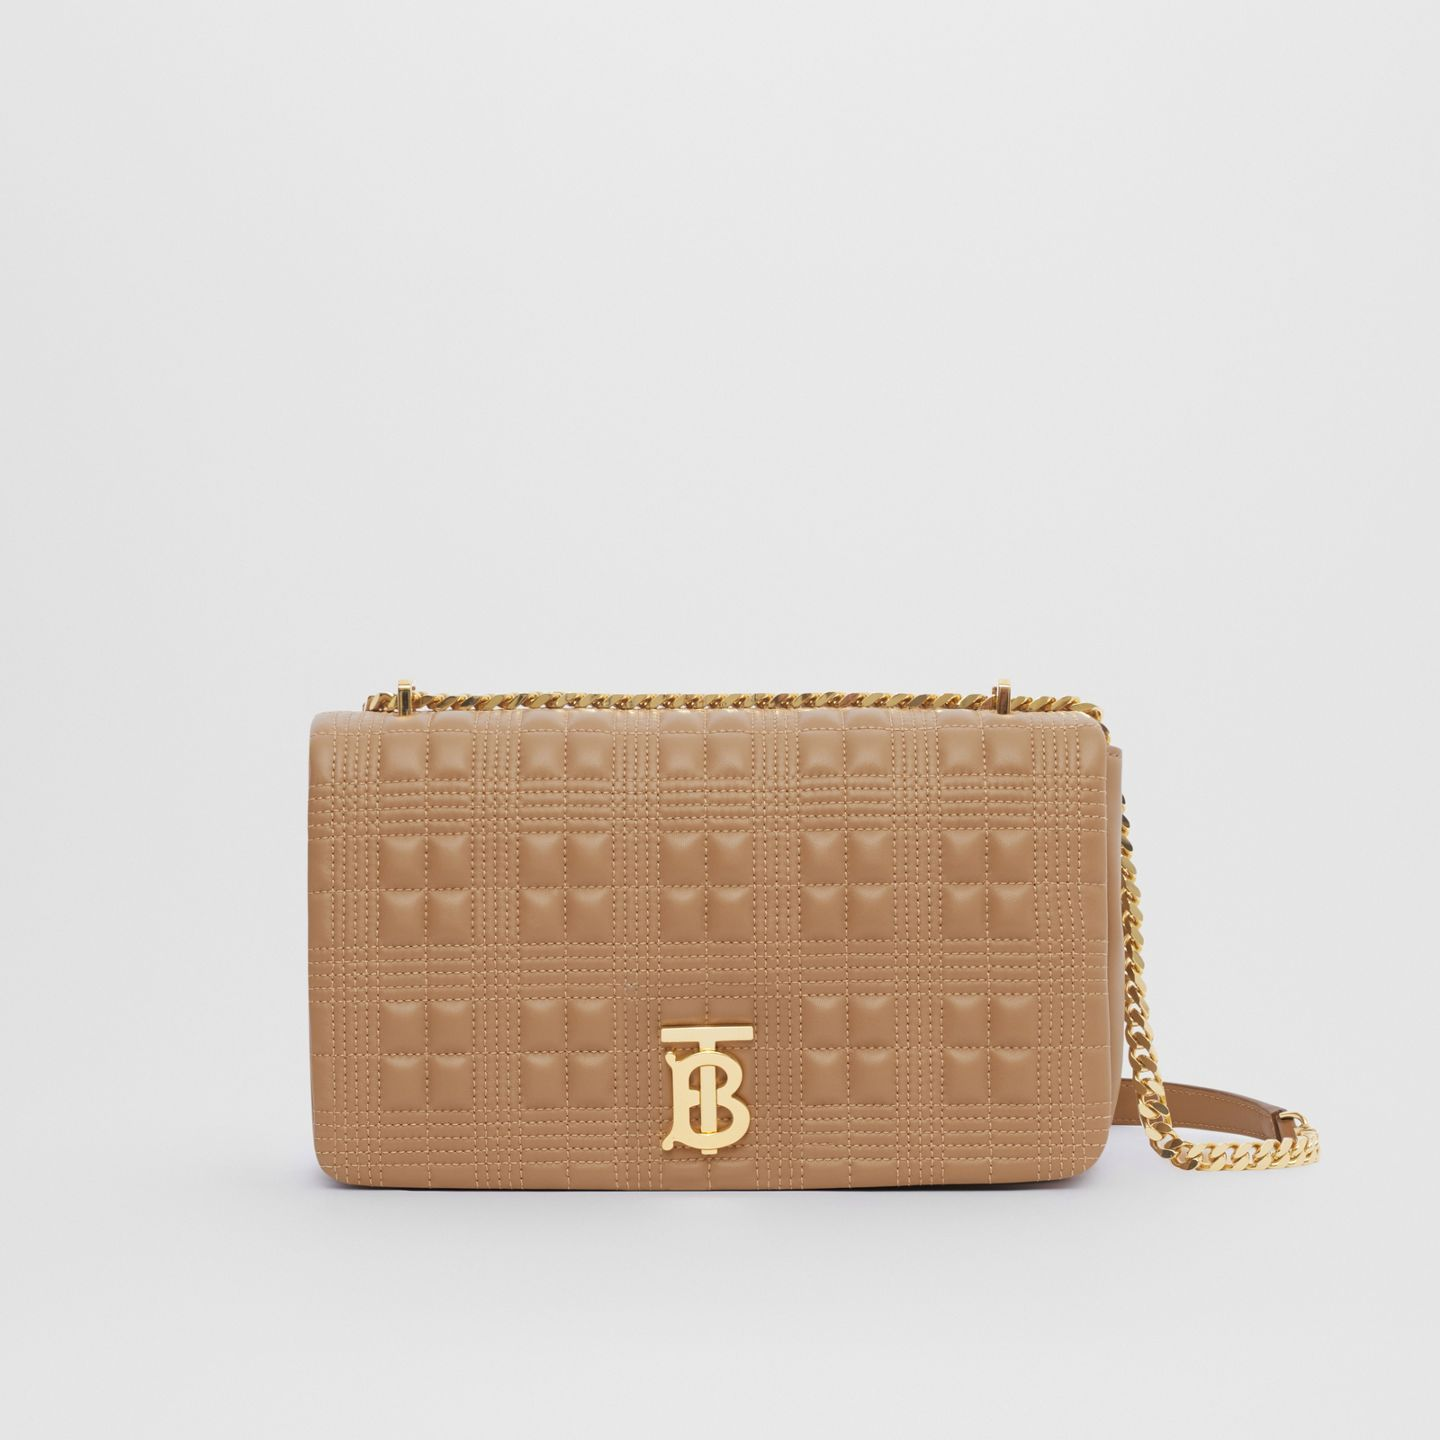 burberry-lola-medium-camel-quilted-check-lambskin-bag